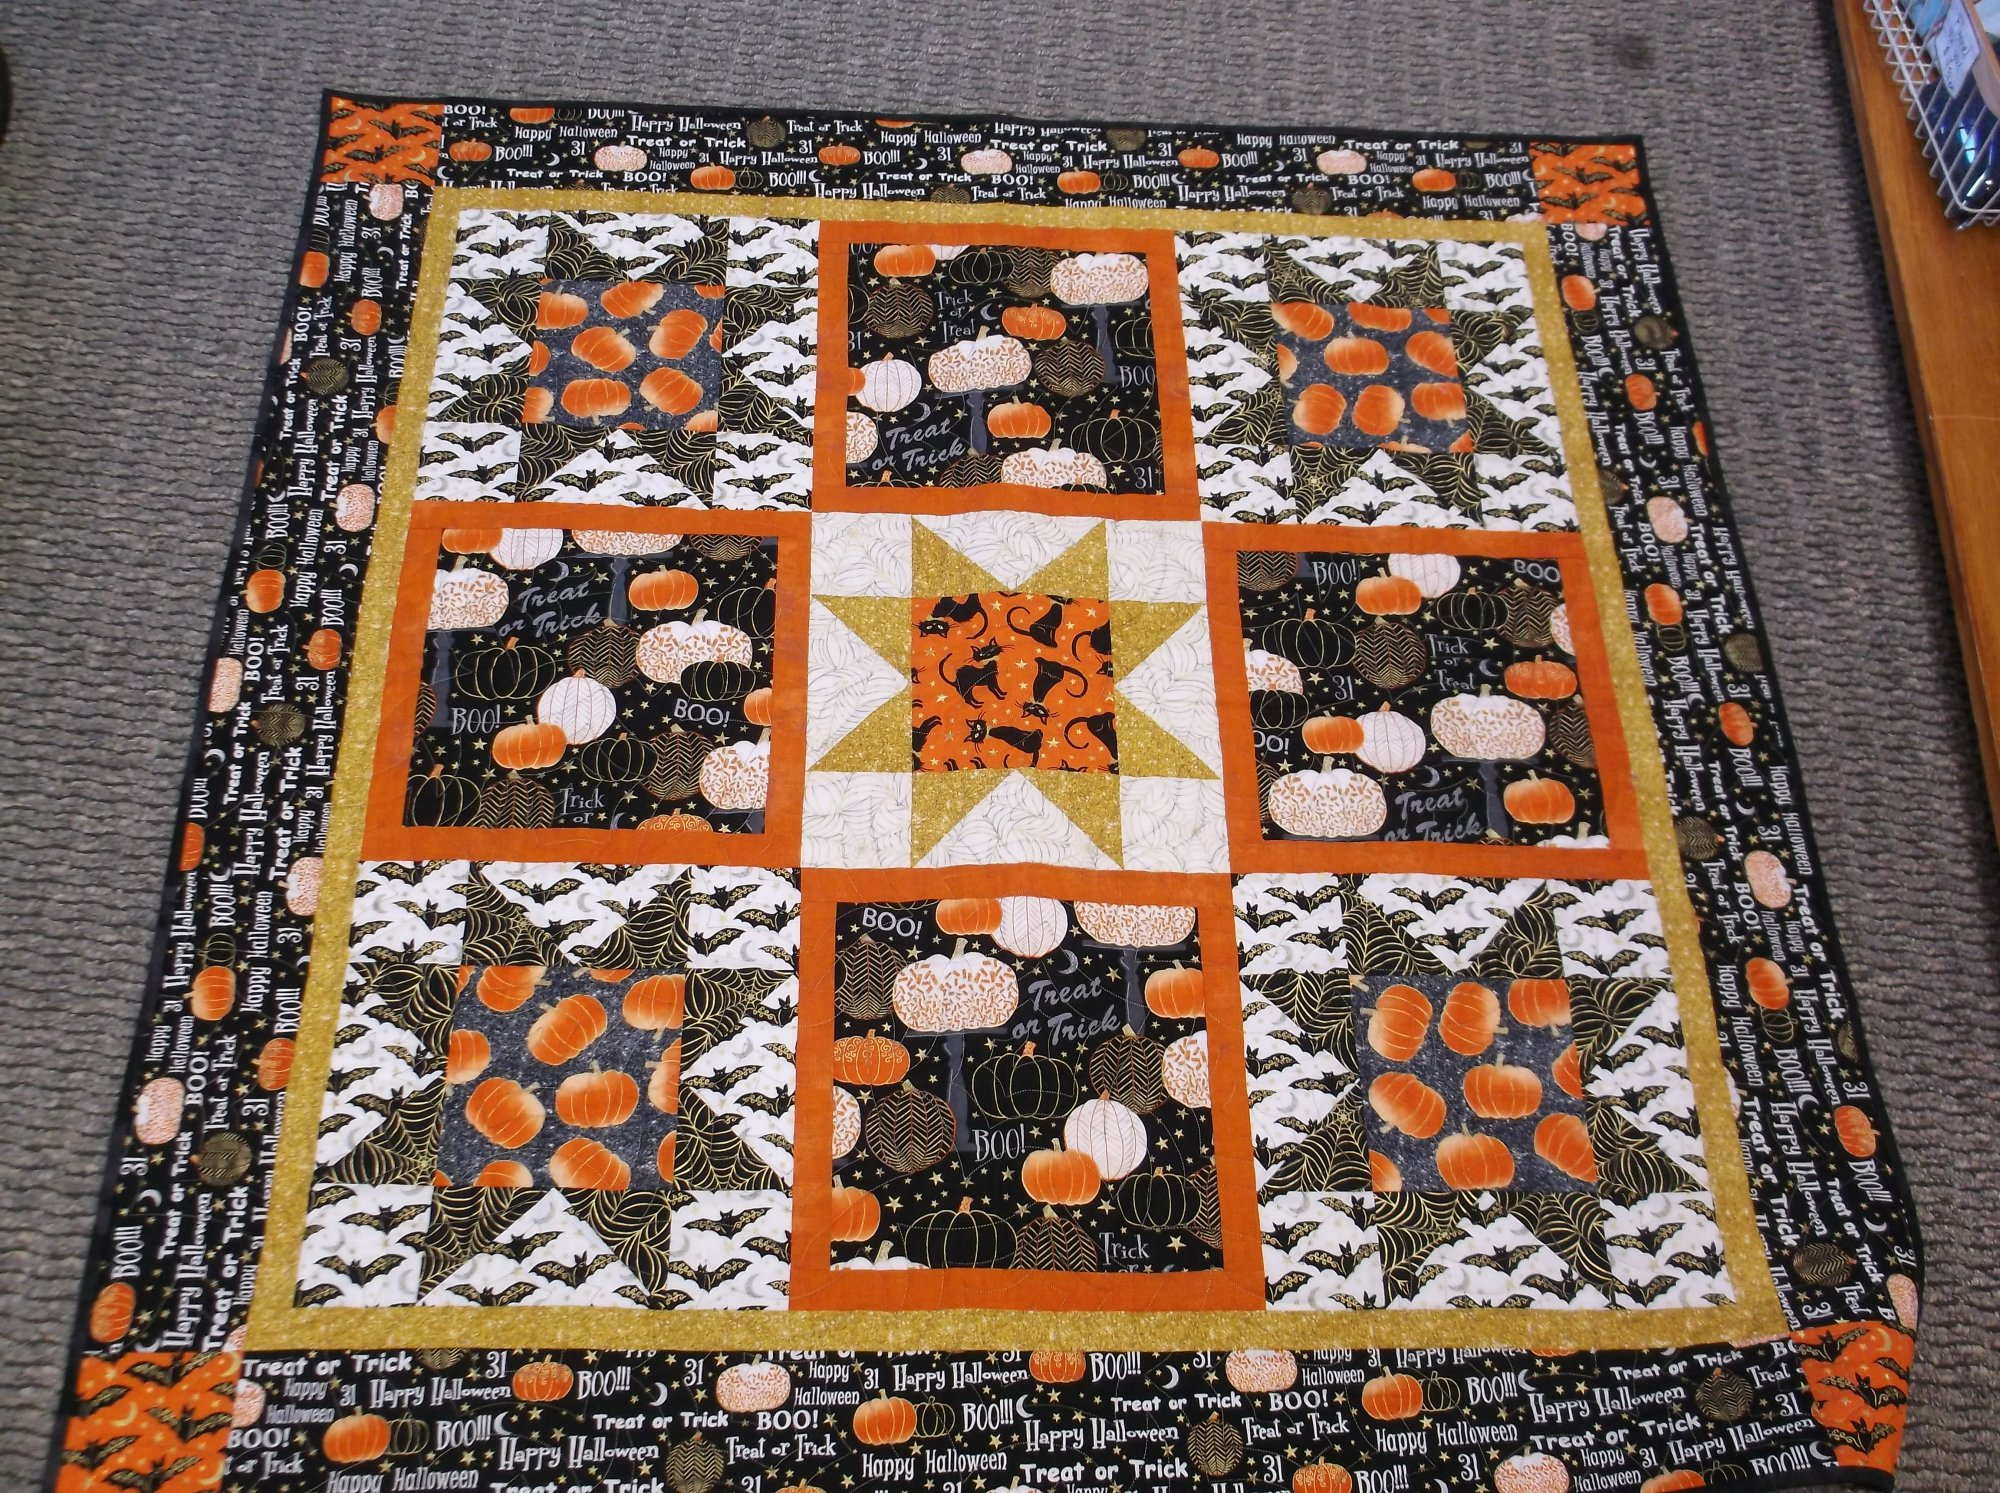 Midnight Spell Quilt kit